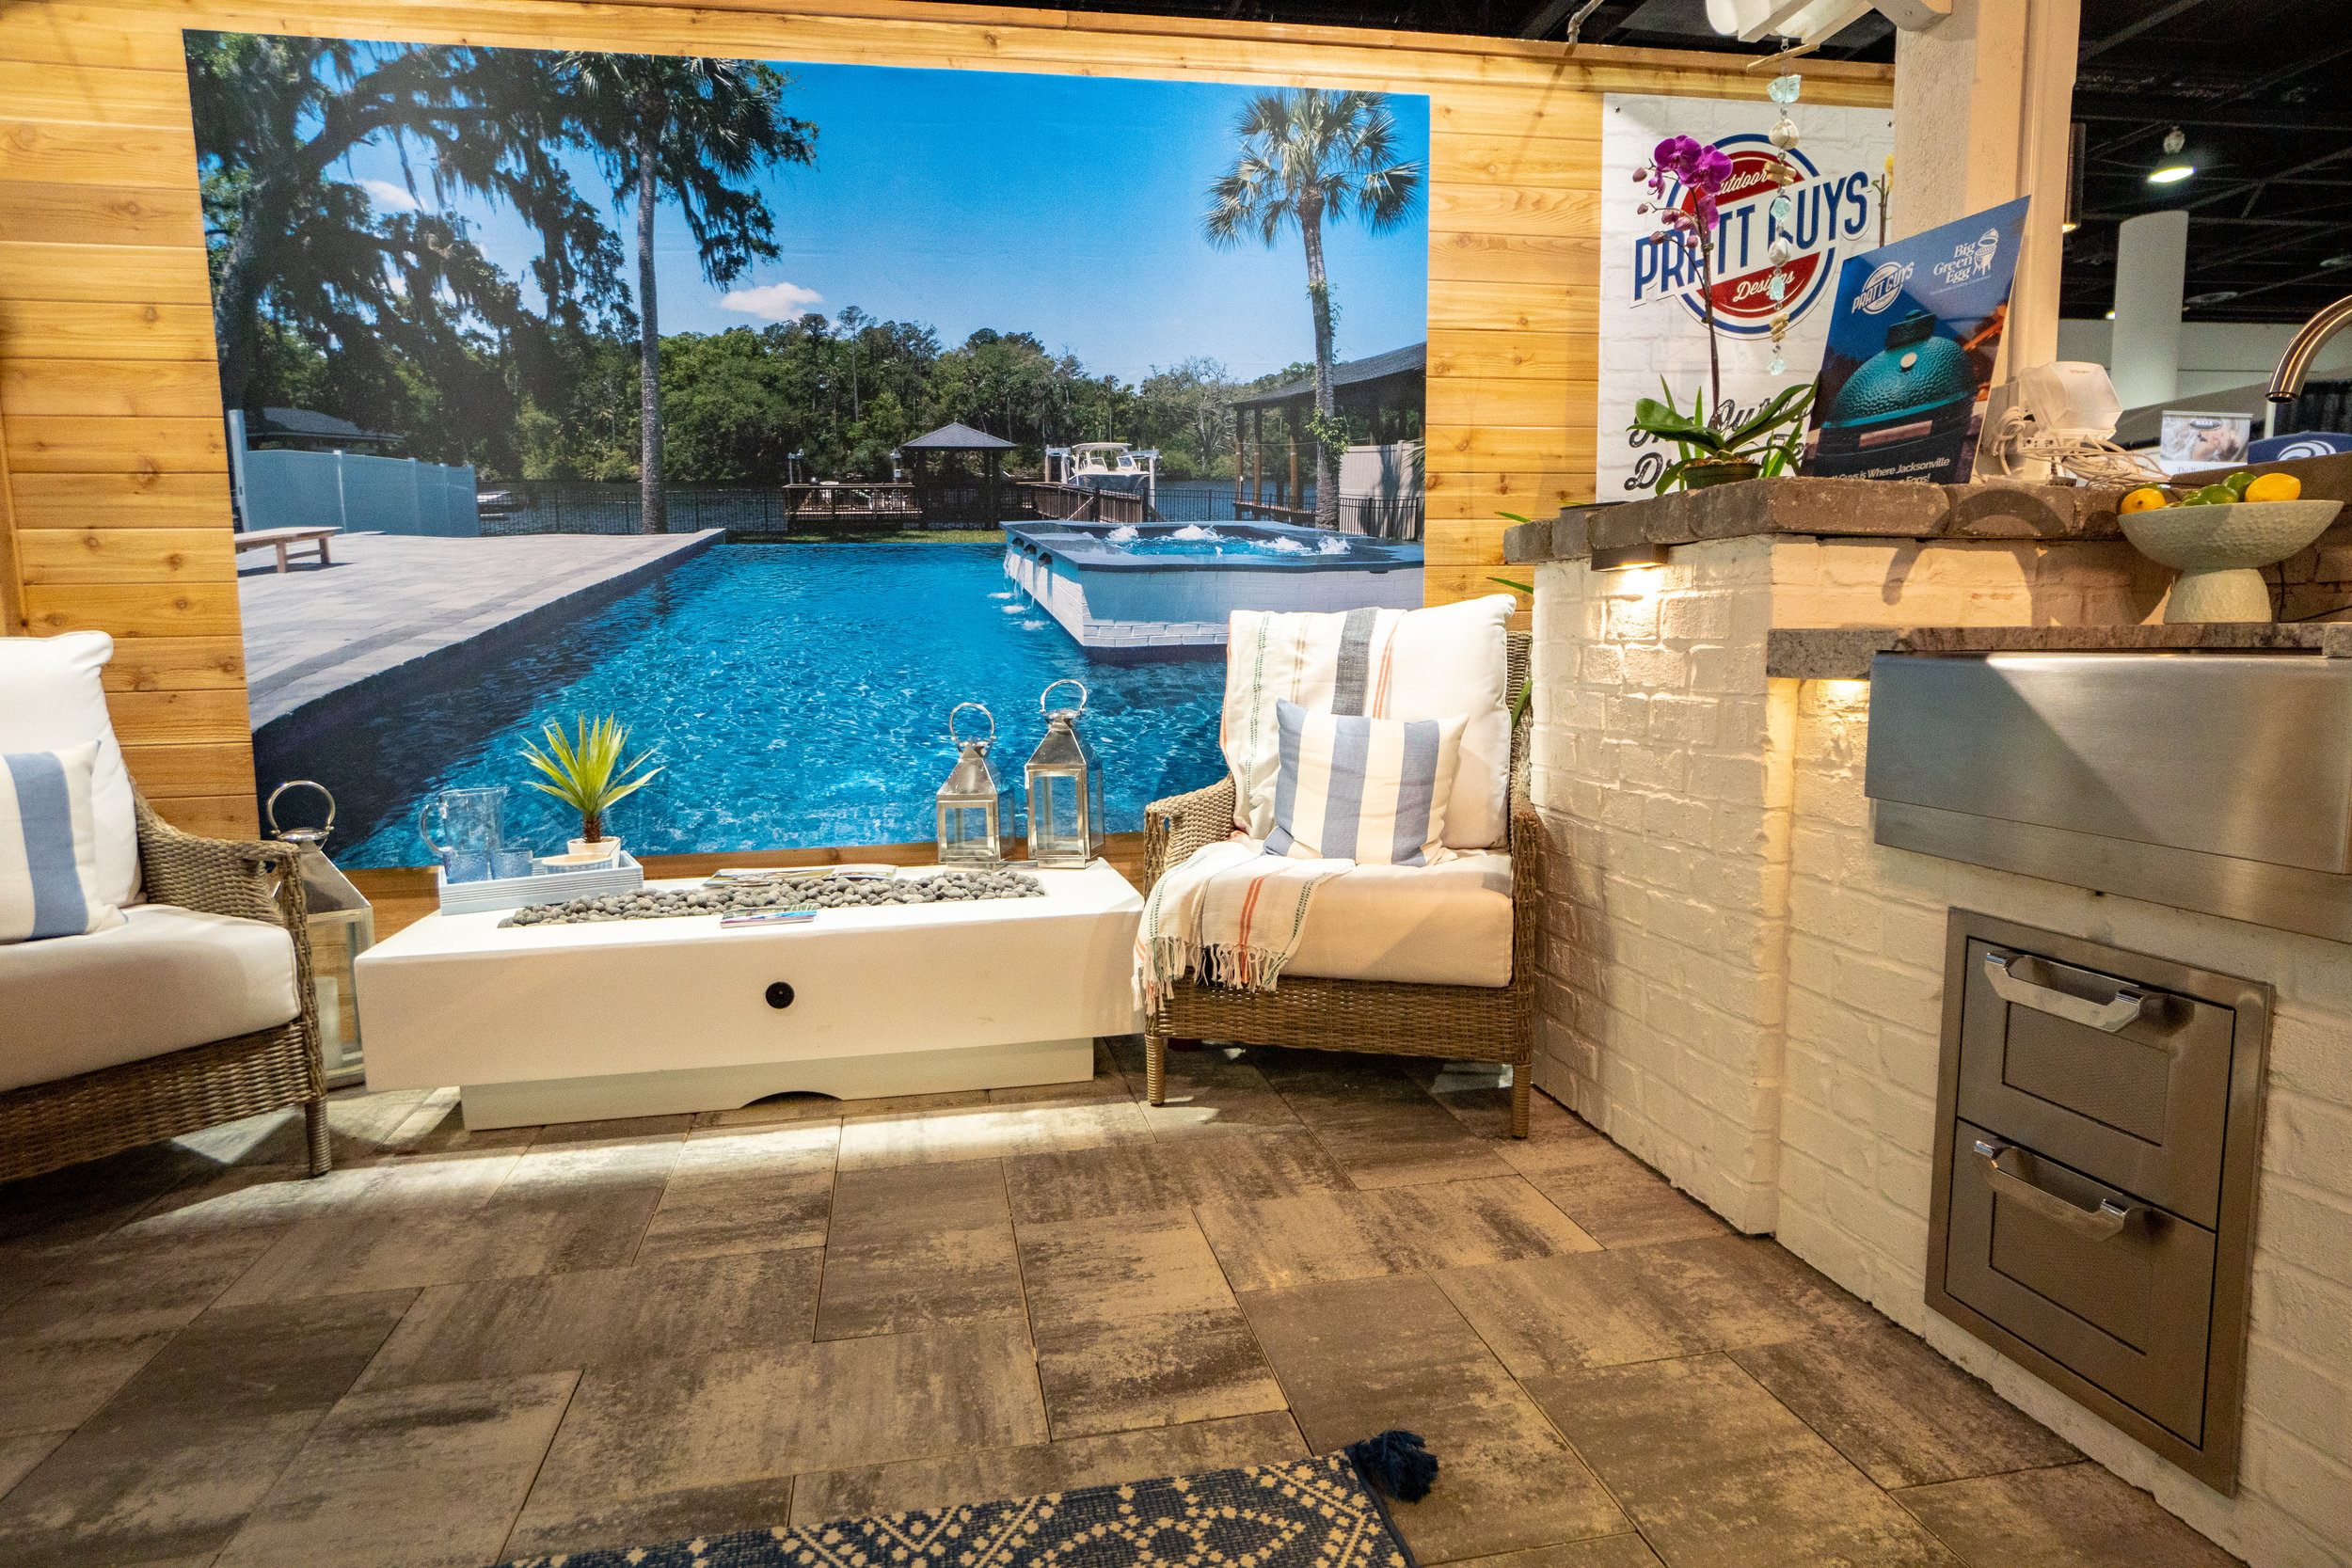 A moment during the 2019 Spring Jacksonville Home + Patio Show aka #HomeAndPrattio Show on 2/28/19 during the 4-day event that took place between February 28 and March 3, 2019. Photo copyright Pratt Guys 2019